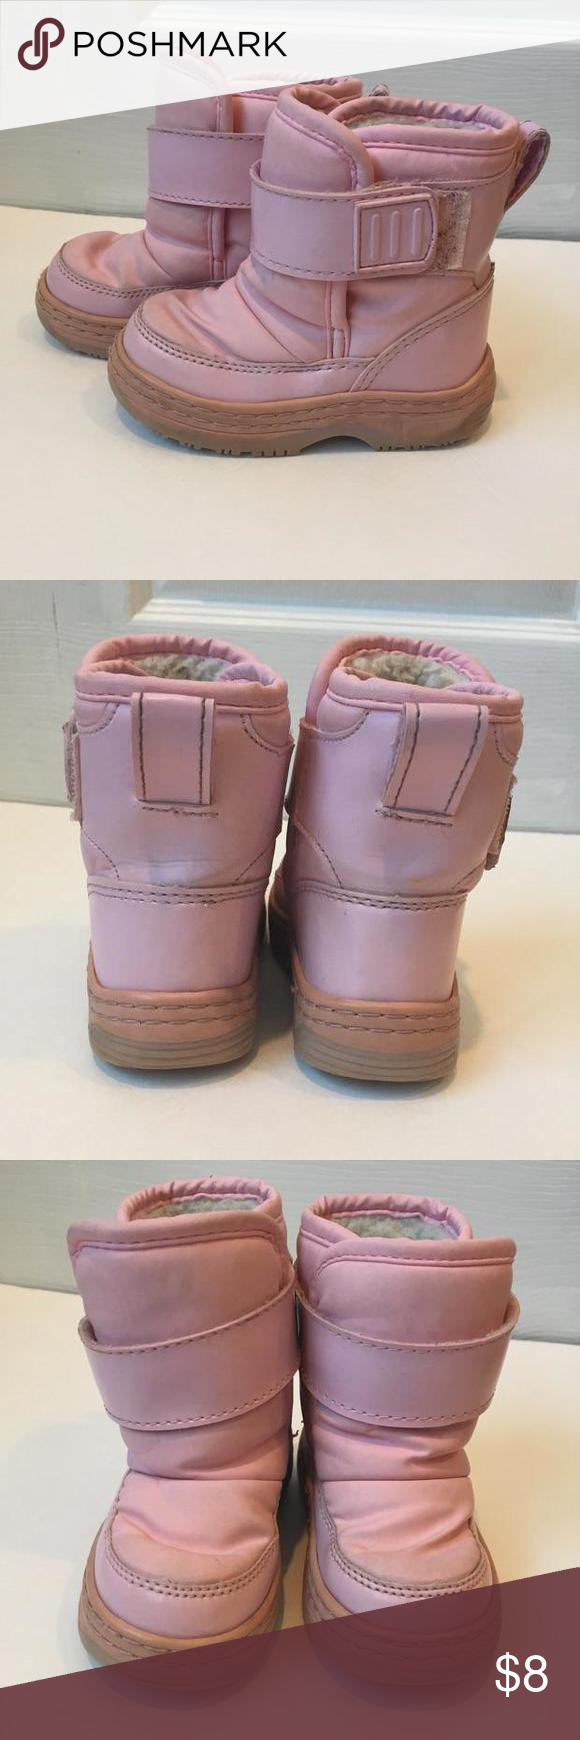 VGUC Circo winter boots size 6 Great condition winter boot w/ Velcro closure. Soles are intact. Very tiny scratch on top of right toe - please see last pic. Shoes